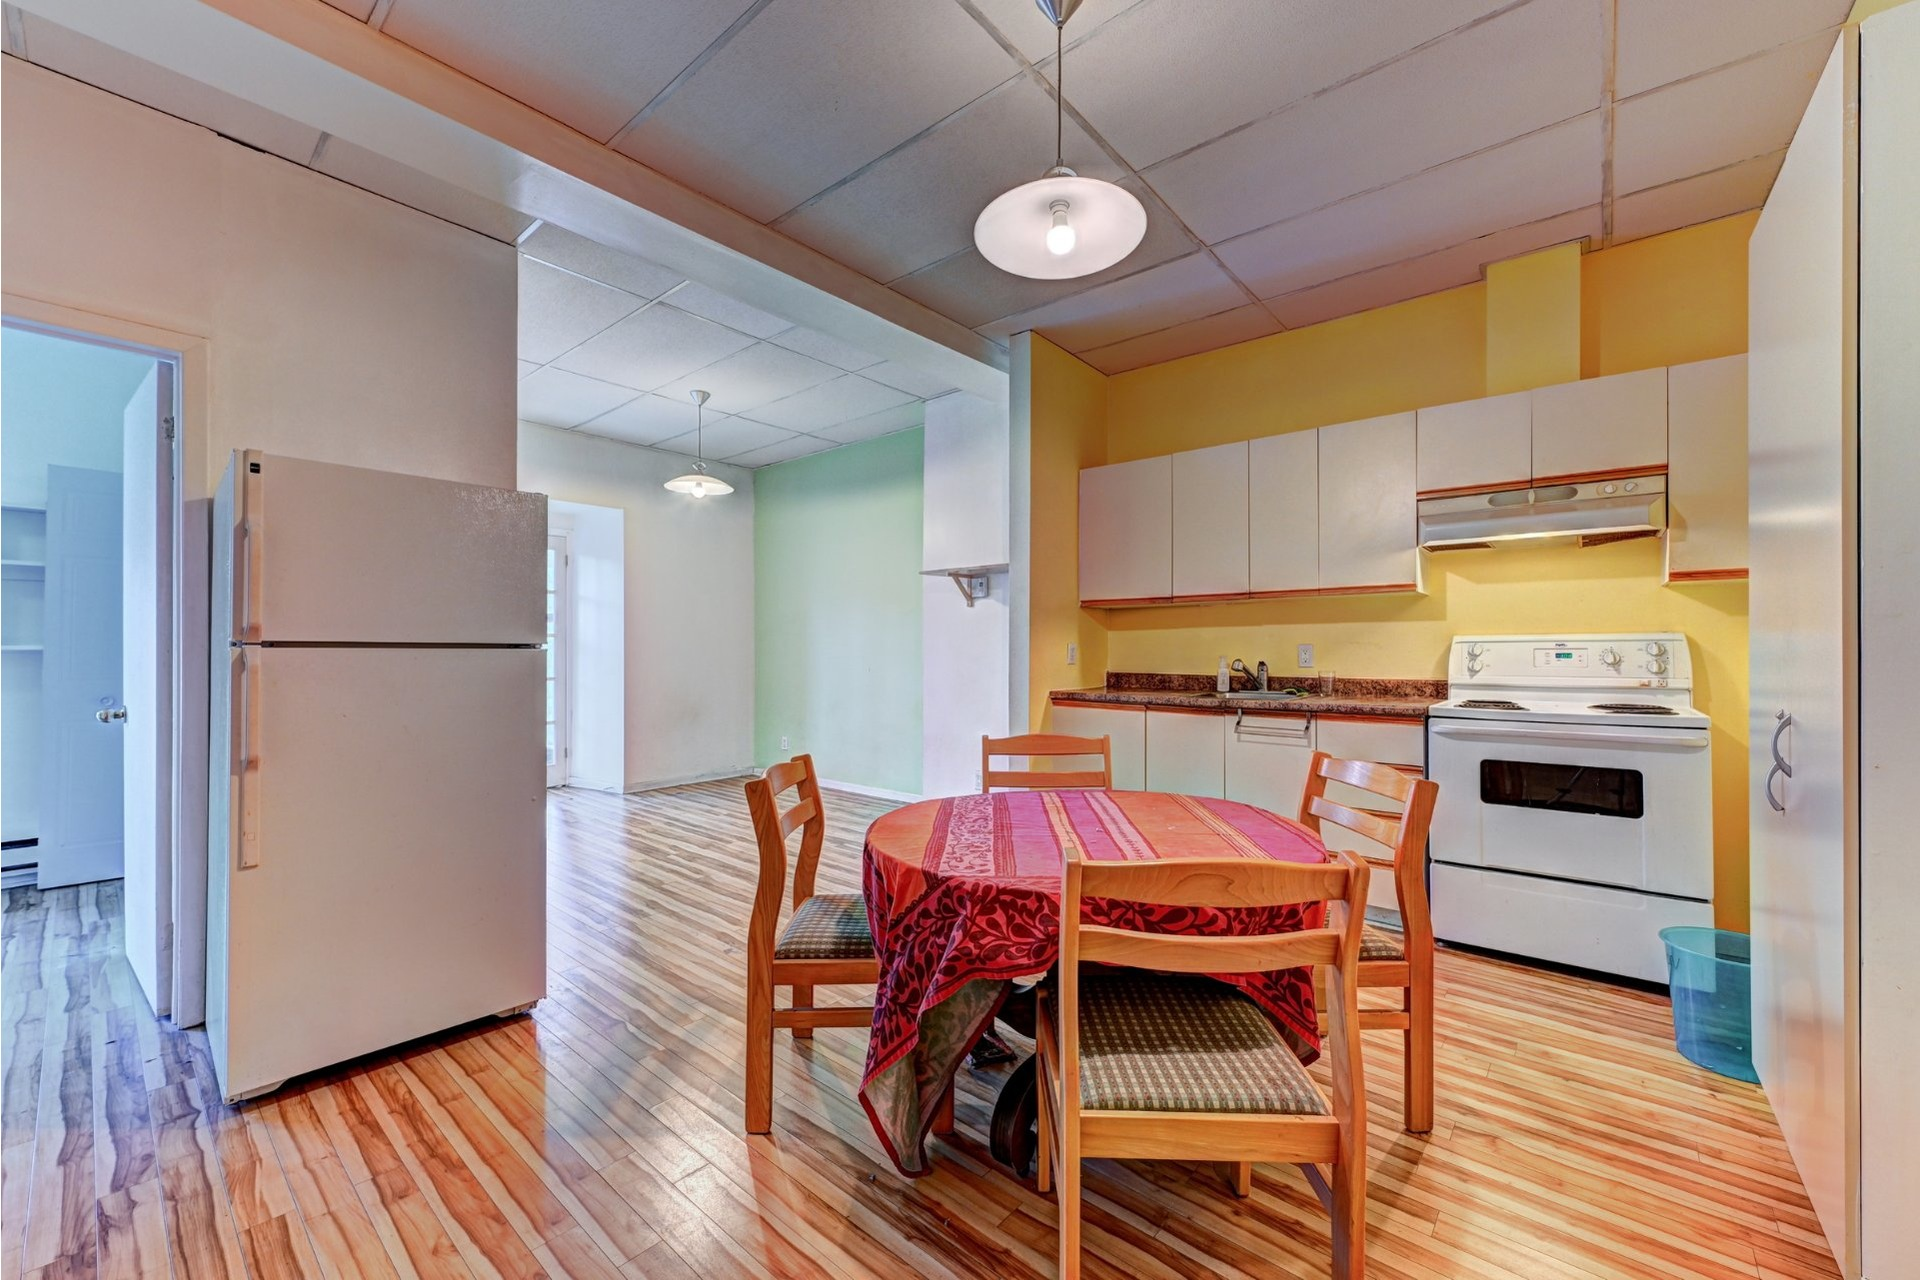 image 16 - Quadruplex For sale Ville-Marie Montréal  - 4 rooms